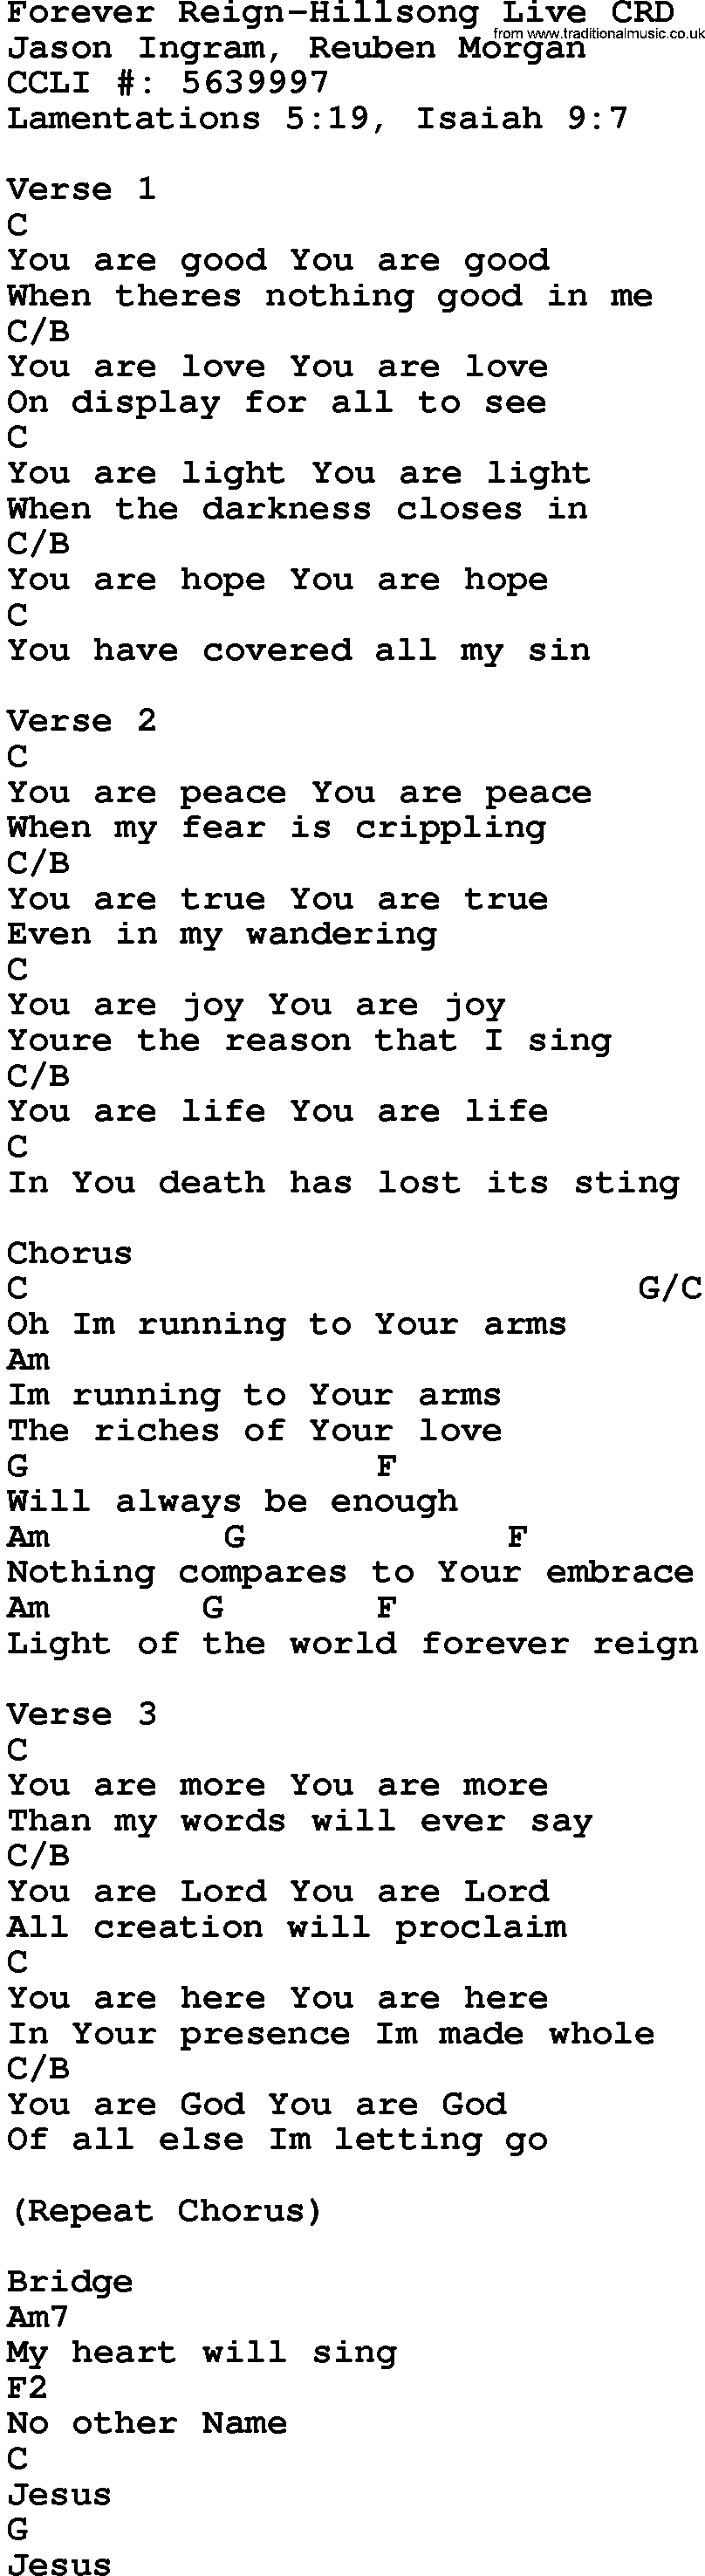 Gospel Song Forever Reign Hillsong Live Lyrics And Chords